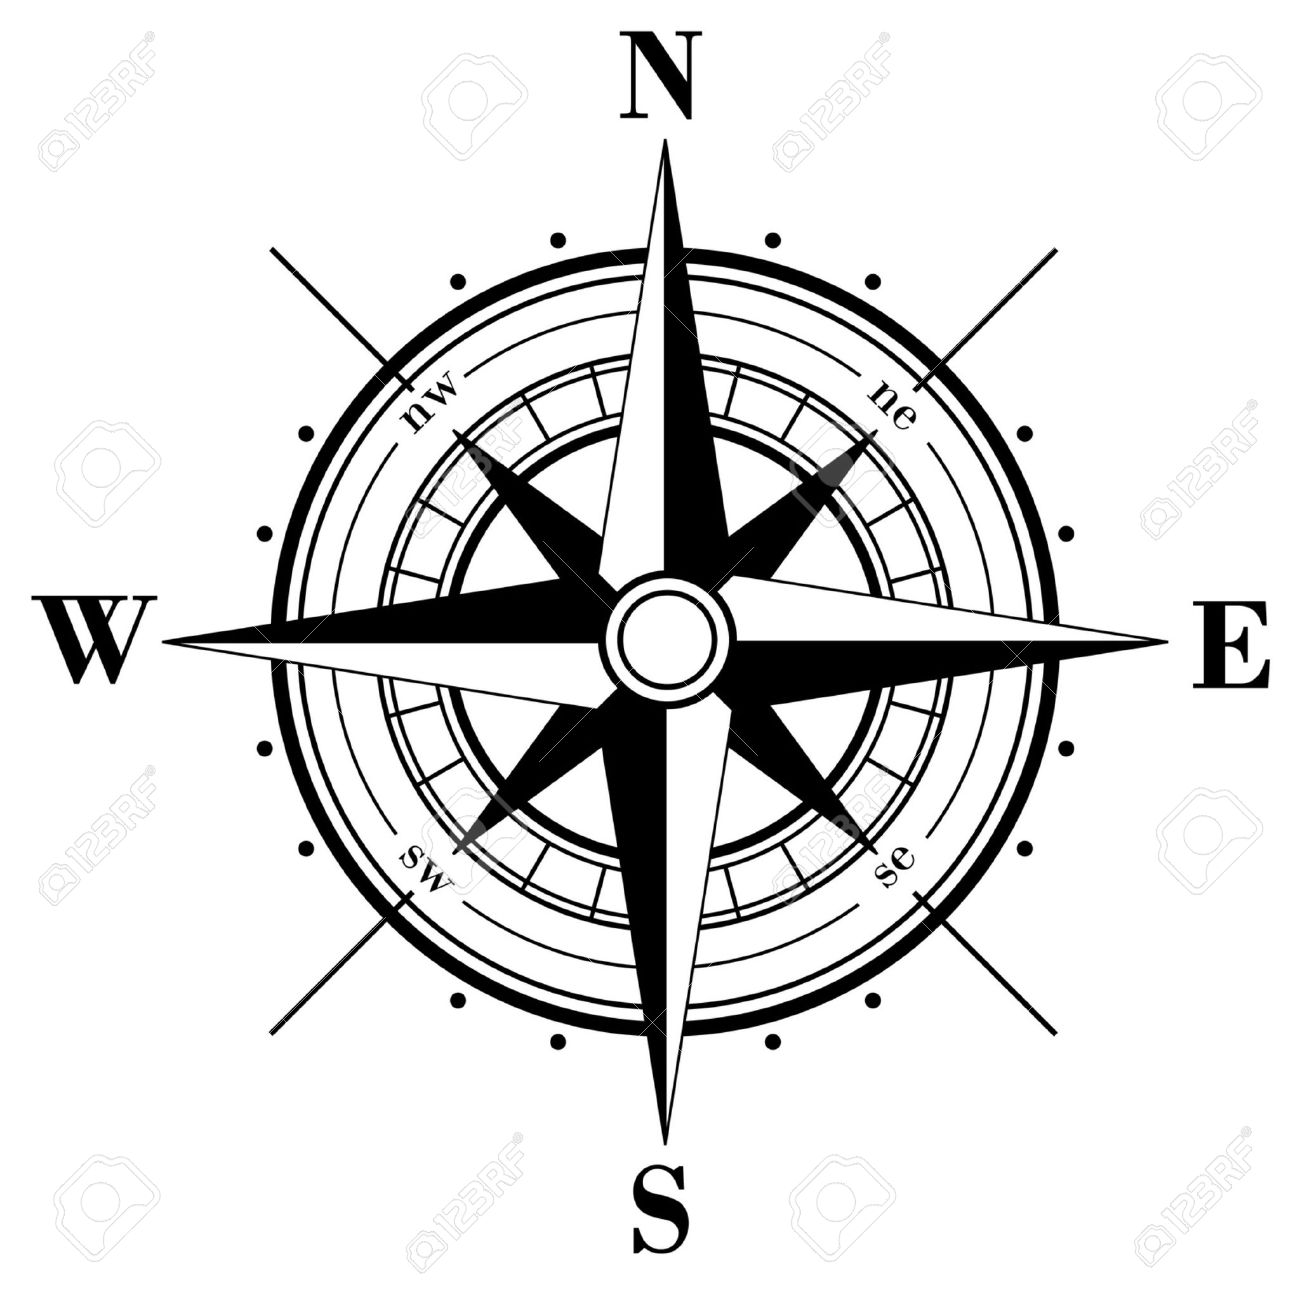 Compass Rose Clipart Black And White.